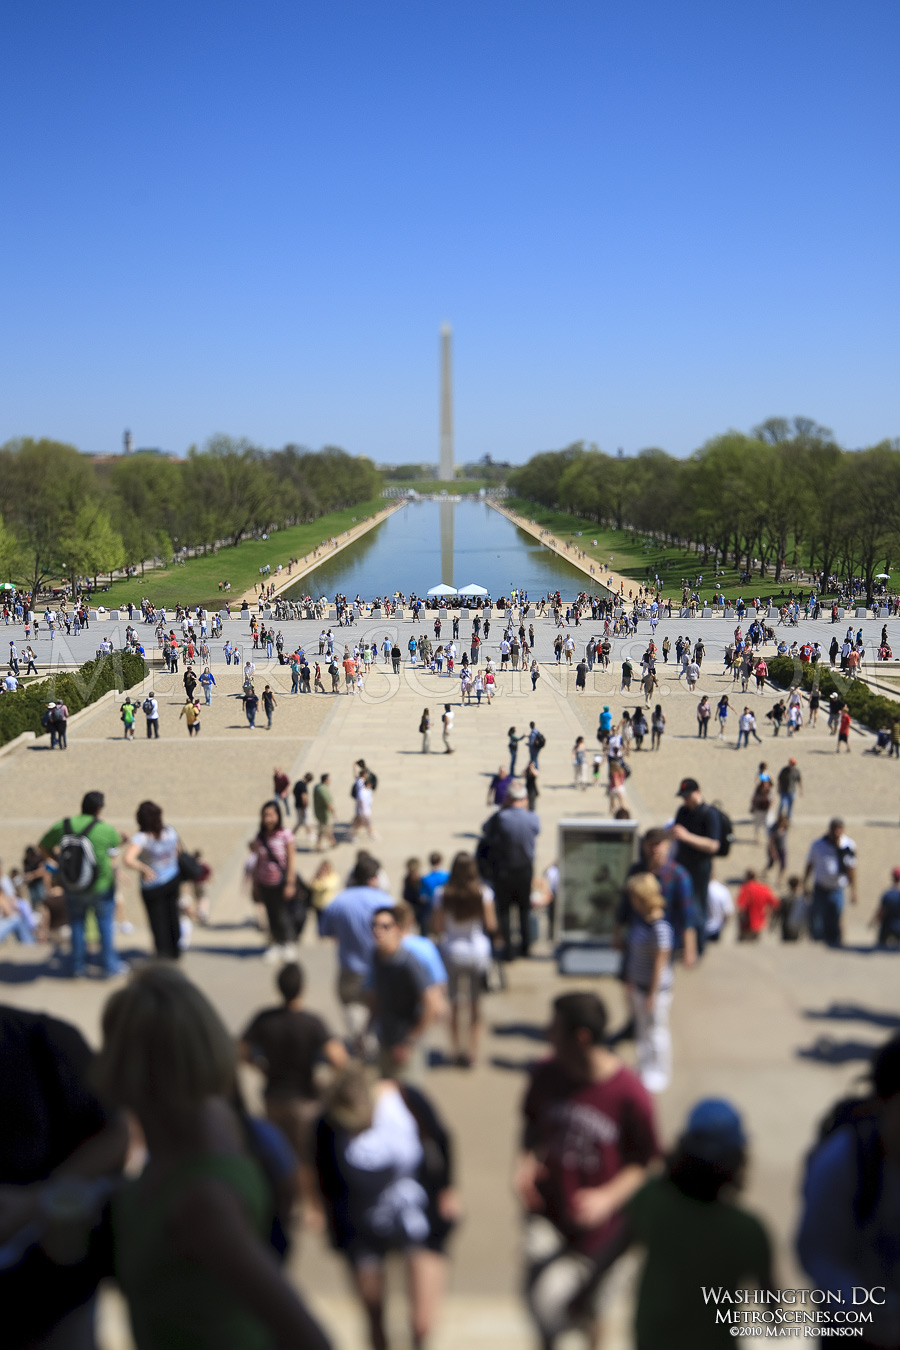 Tilt Shift across the Reflecting Pool in Washington, DC